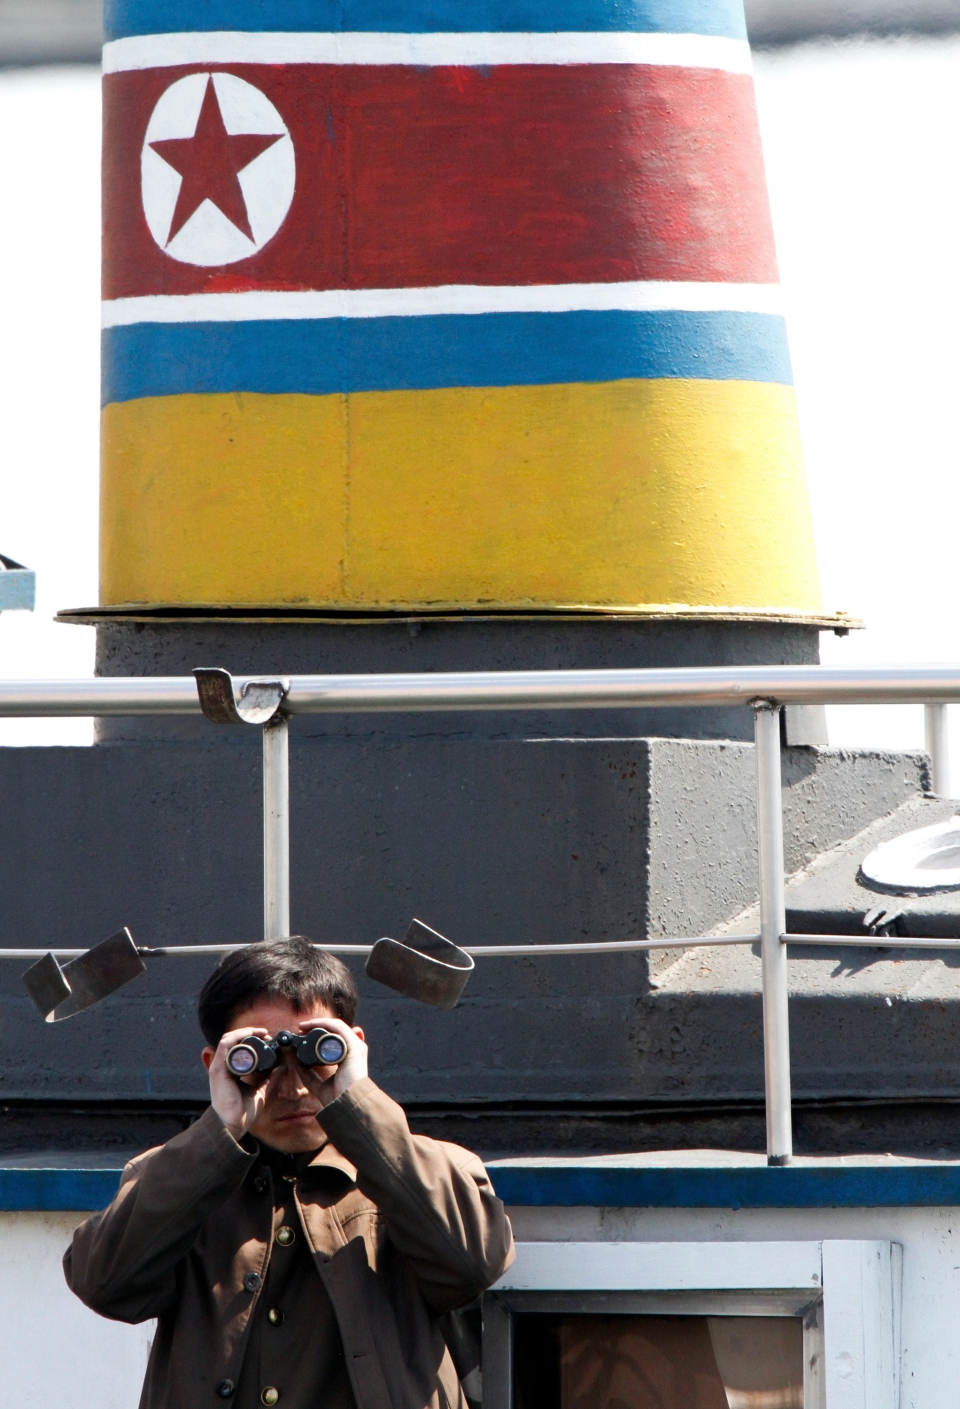 A North Korean soldier uses binocular monitoring on a boat along the river bank of the North Korean town of Sinuiju, opposite to the Chinese border city of Dandong, Wednesday, April 10, 2013. (AP)